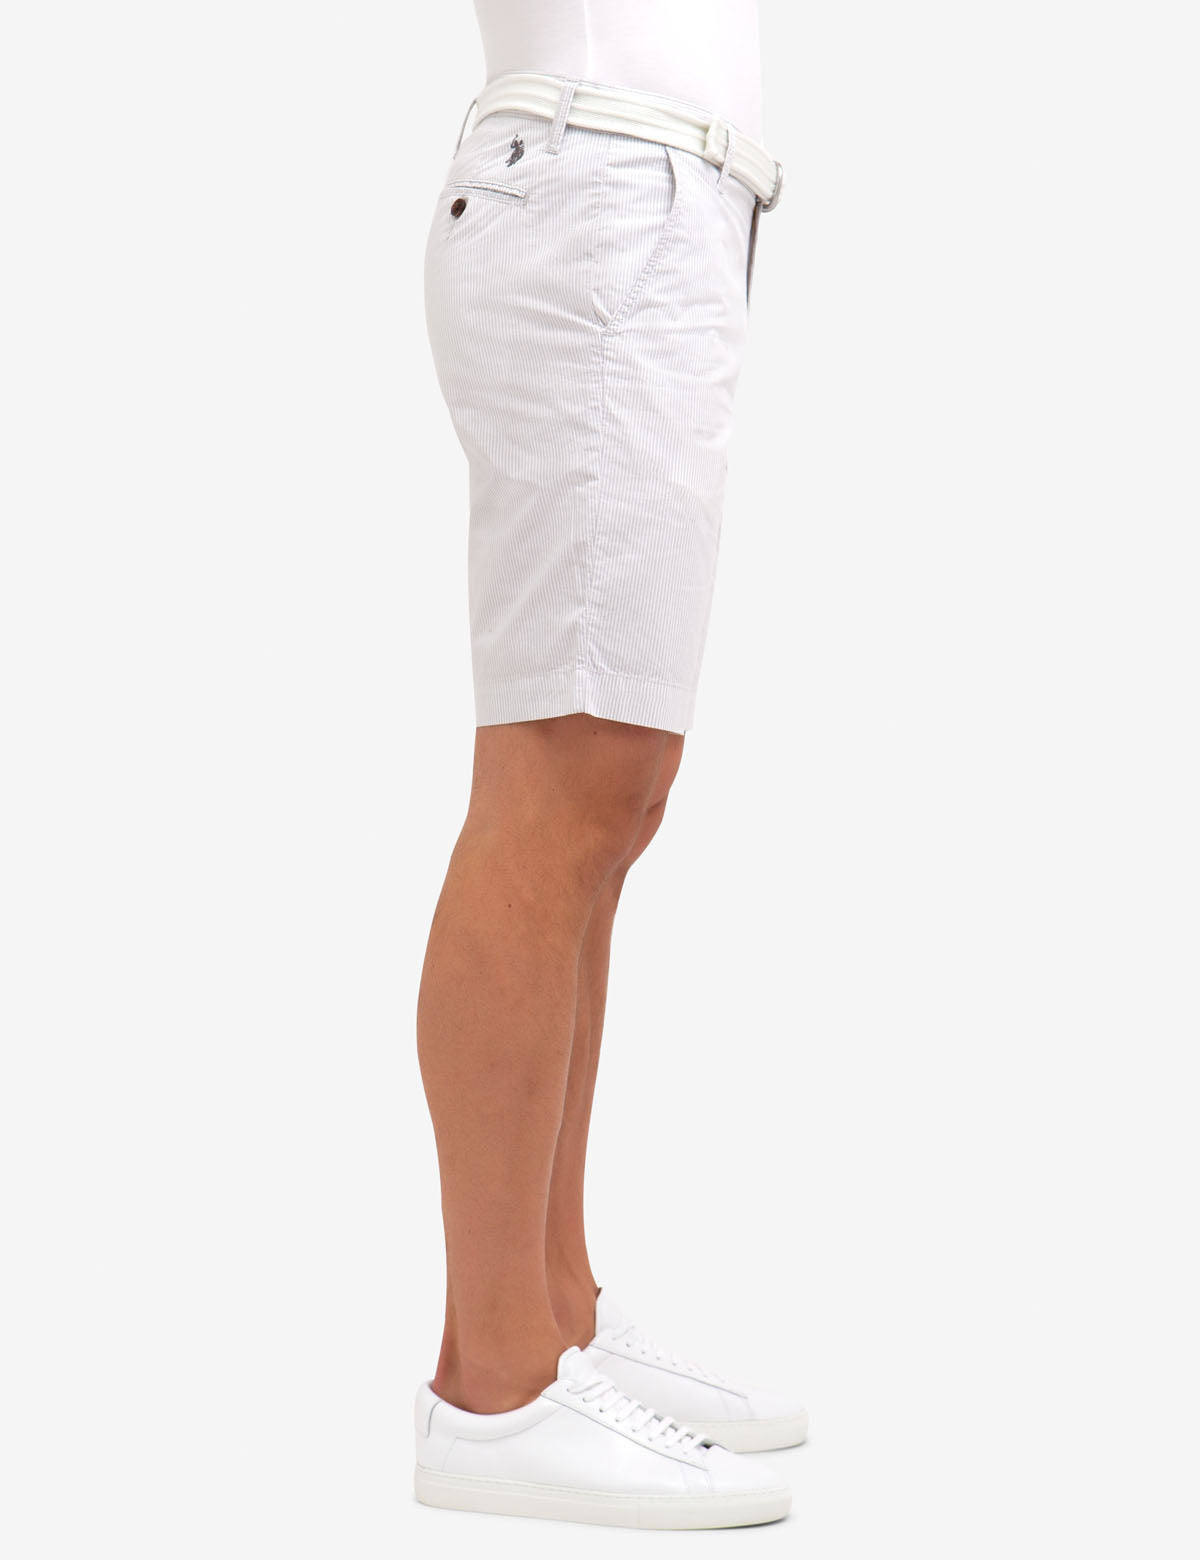 BELTED VERTICAL STRIPED SHORTS - U.S. Polo Assn.